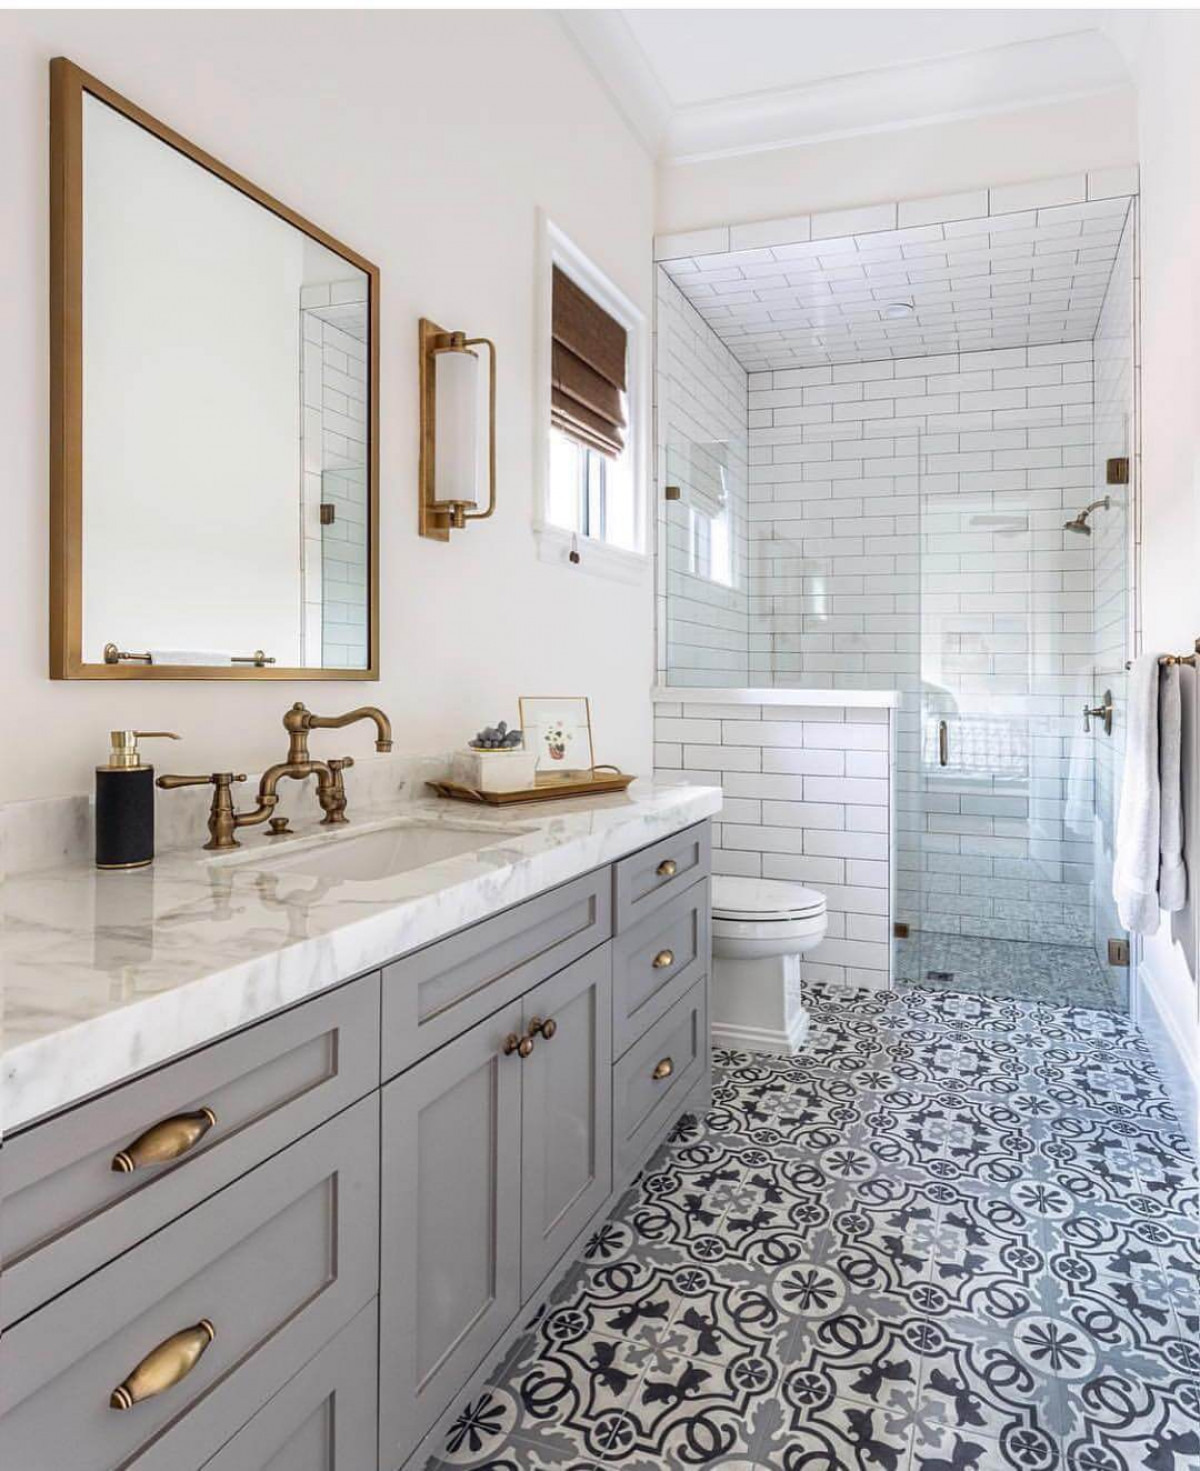 Walk In Shower Design Ideas Awesome 11 Brilliant Walk In Shower Ideas for Small Bathrooms